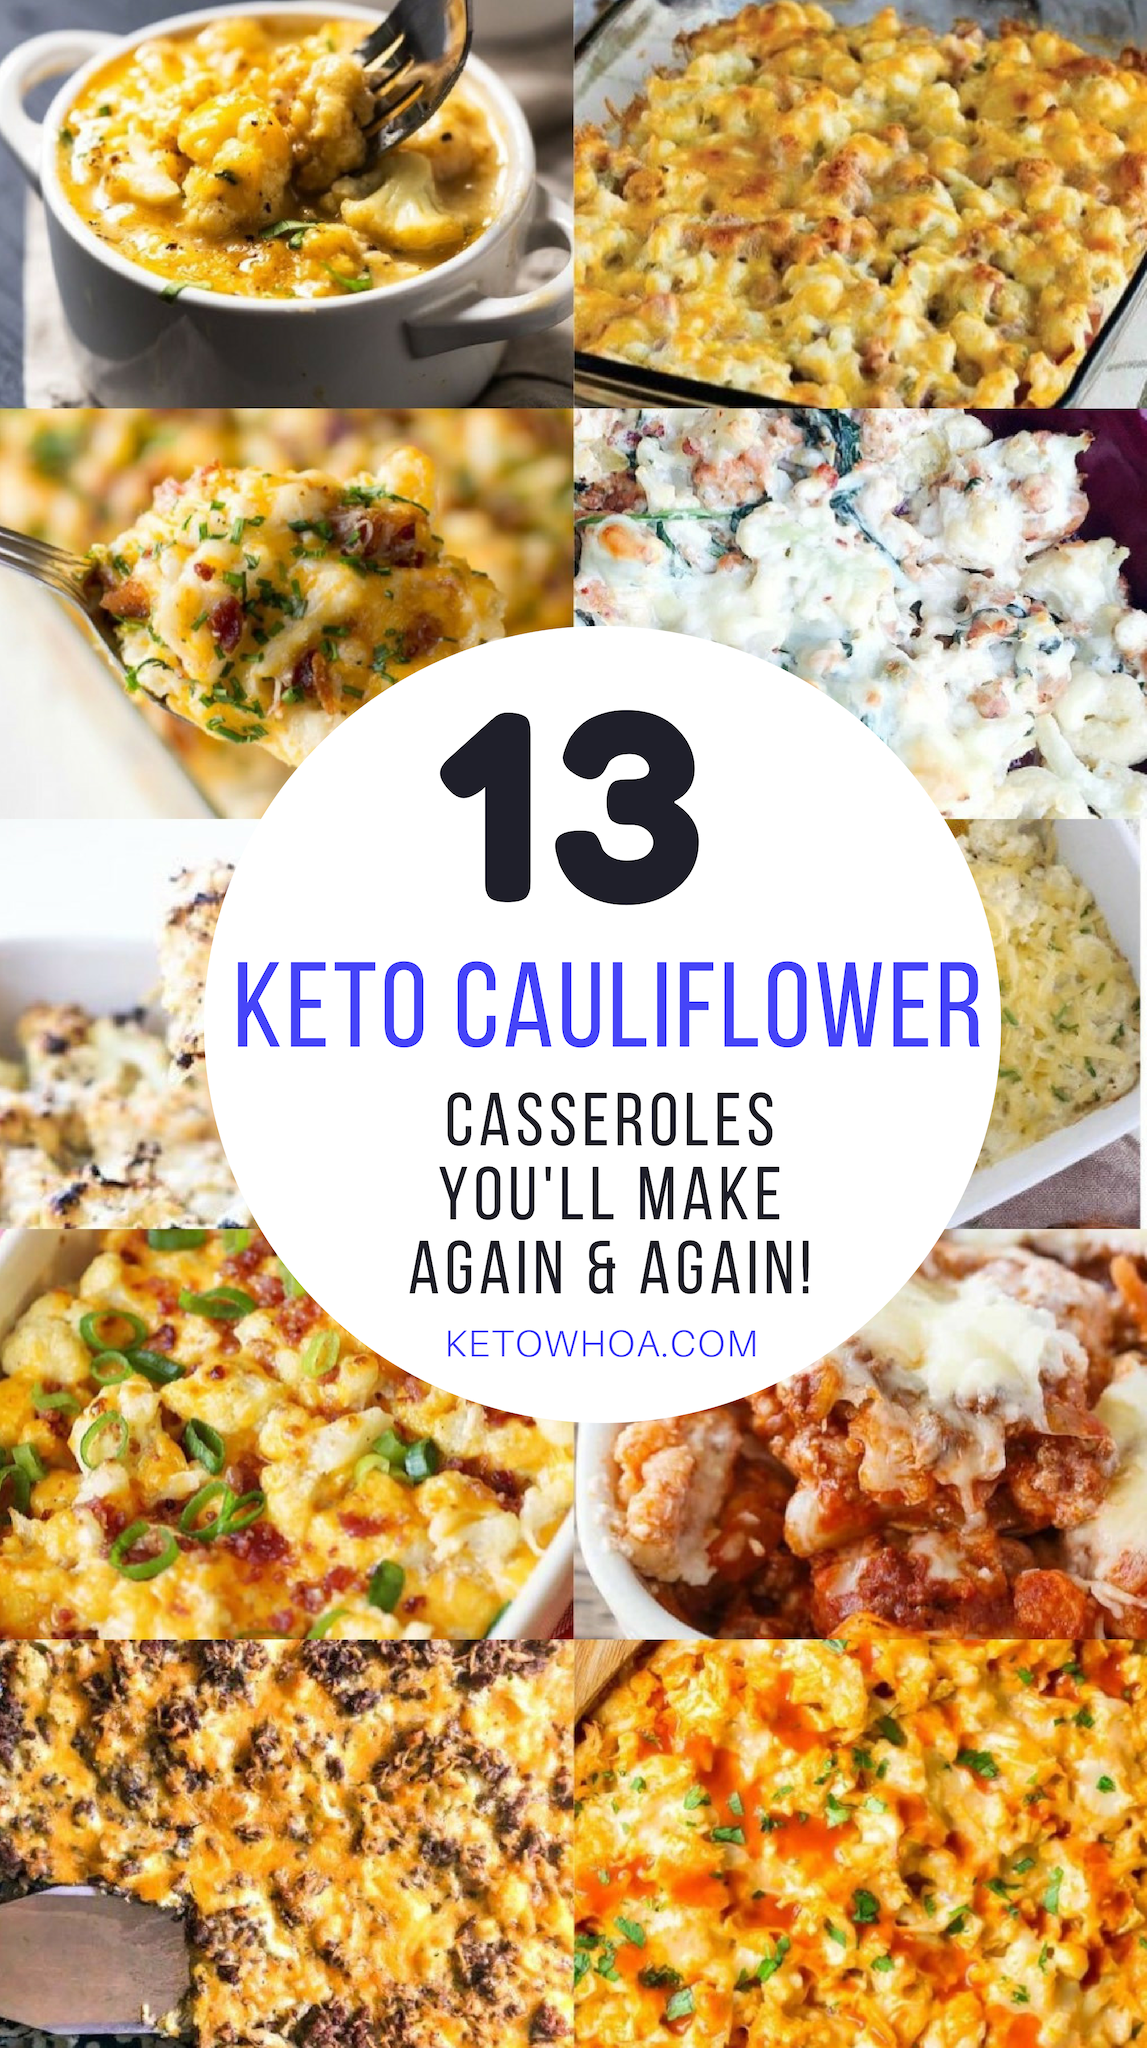 13 Best Low Carb Keto Cauliflower Casserole Recipes #casserolerecipes